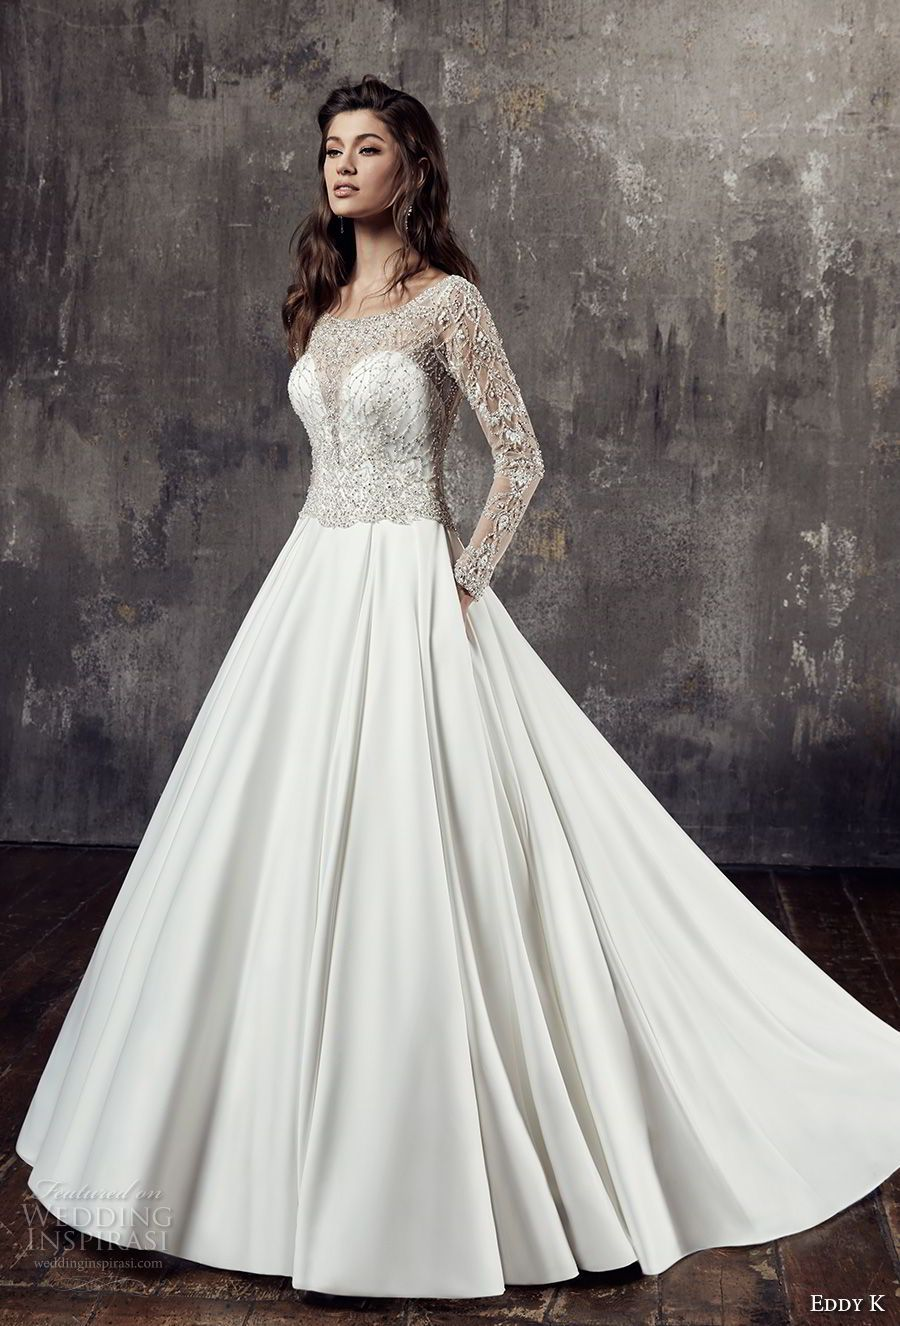 Eddy k couture wedding dresses satin skirt chapel train and